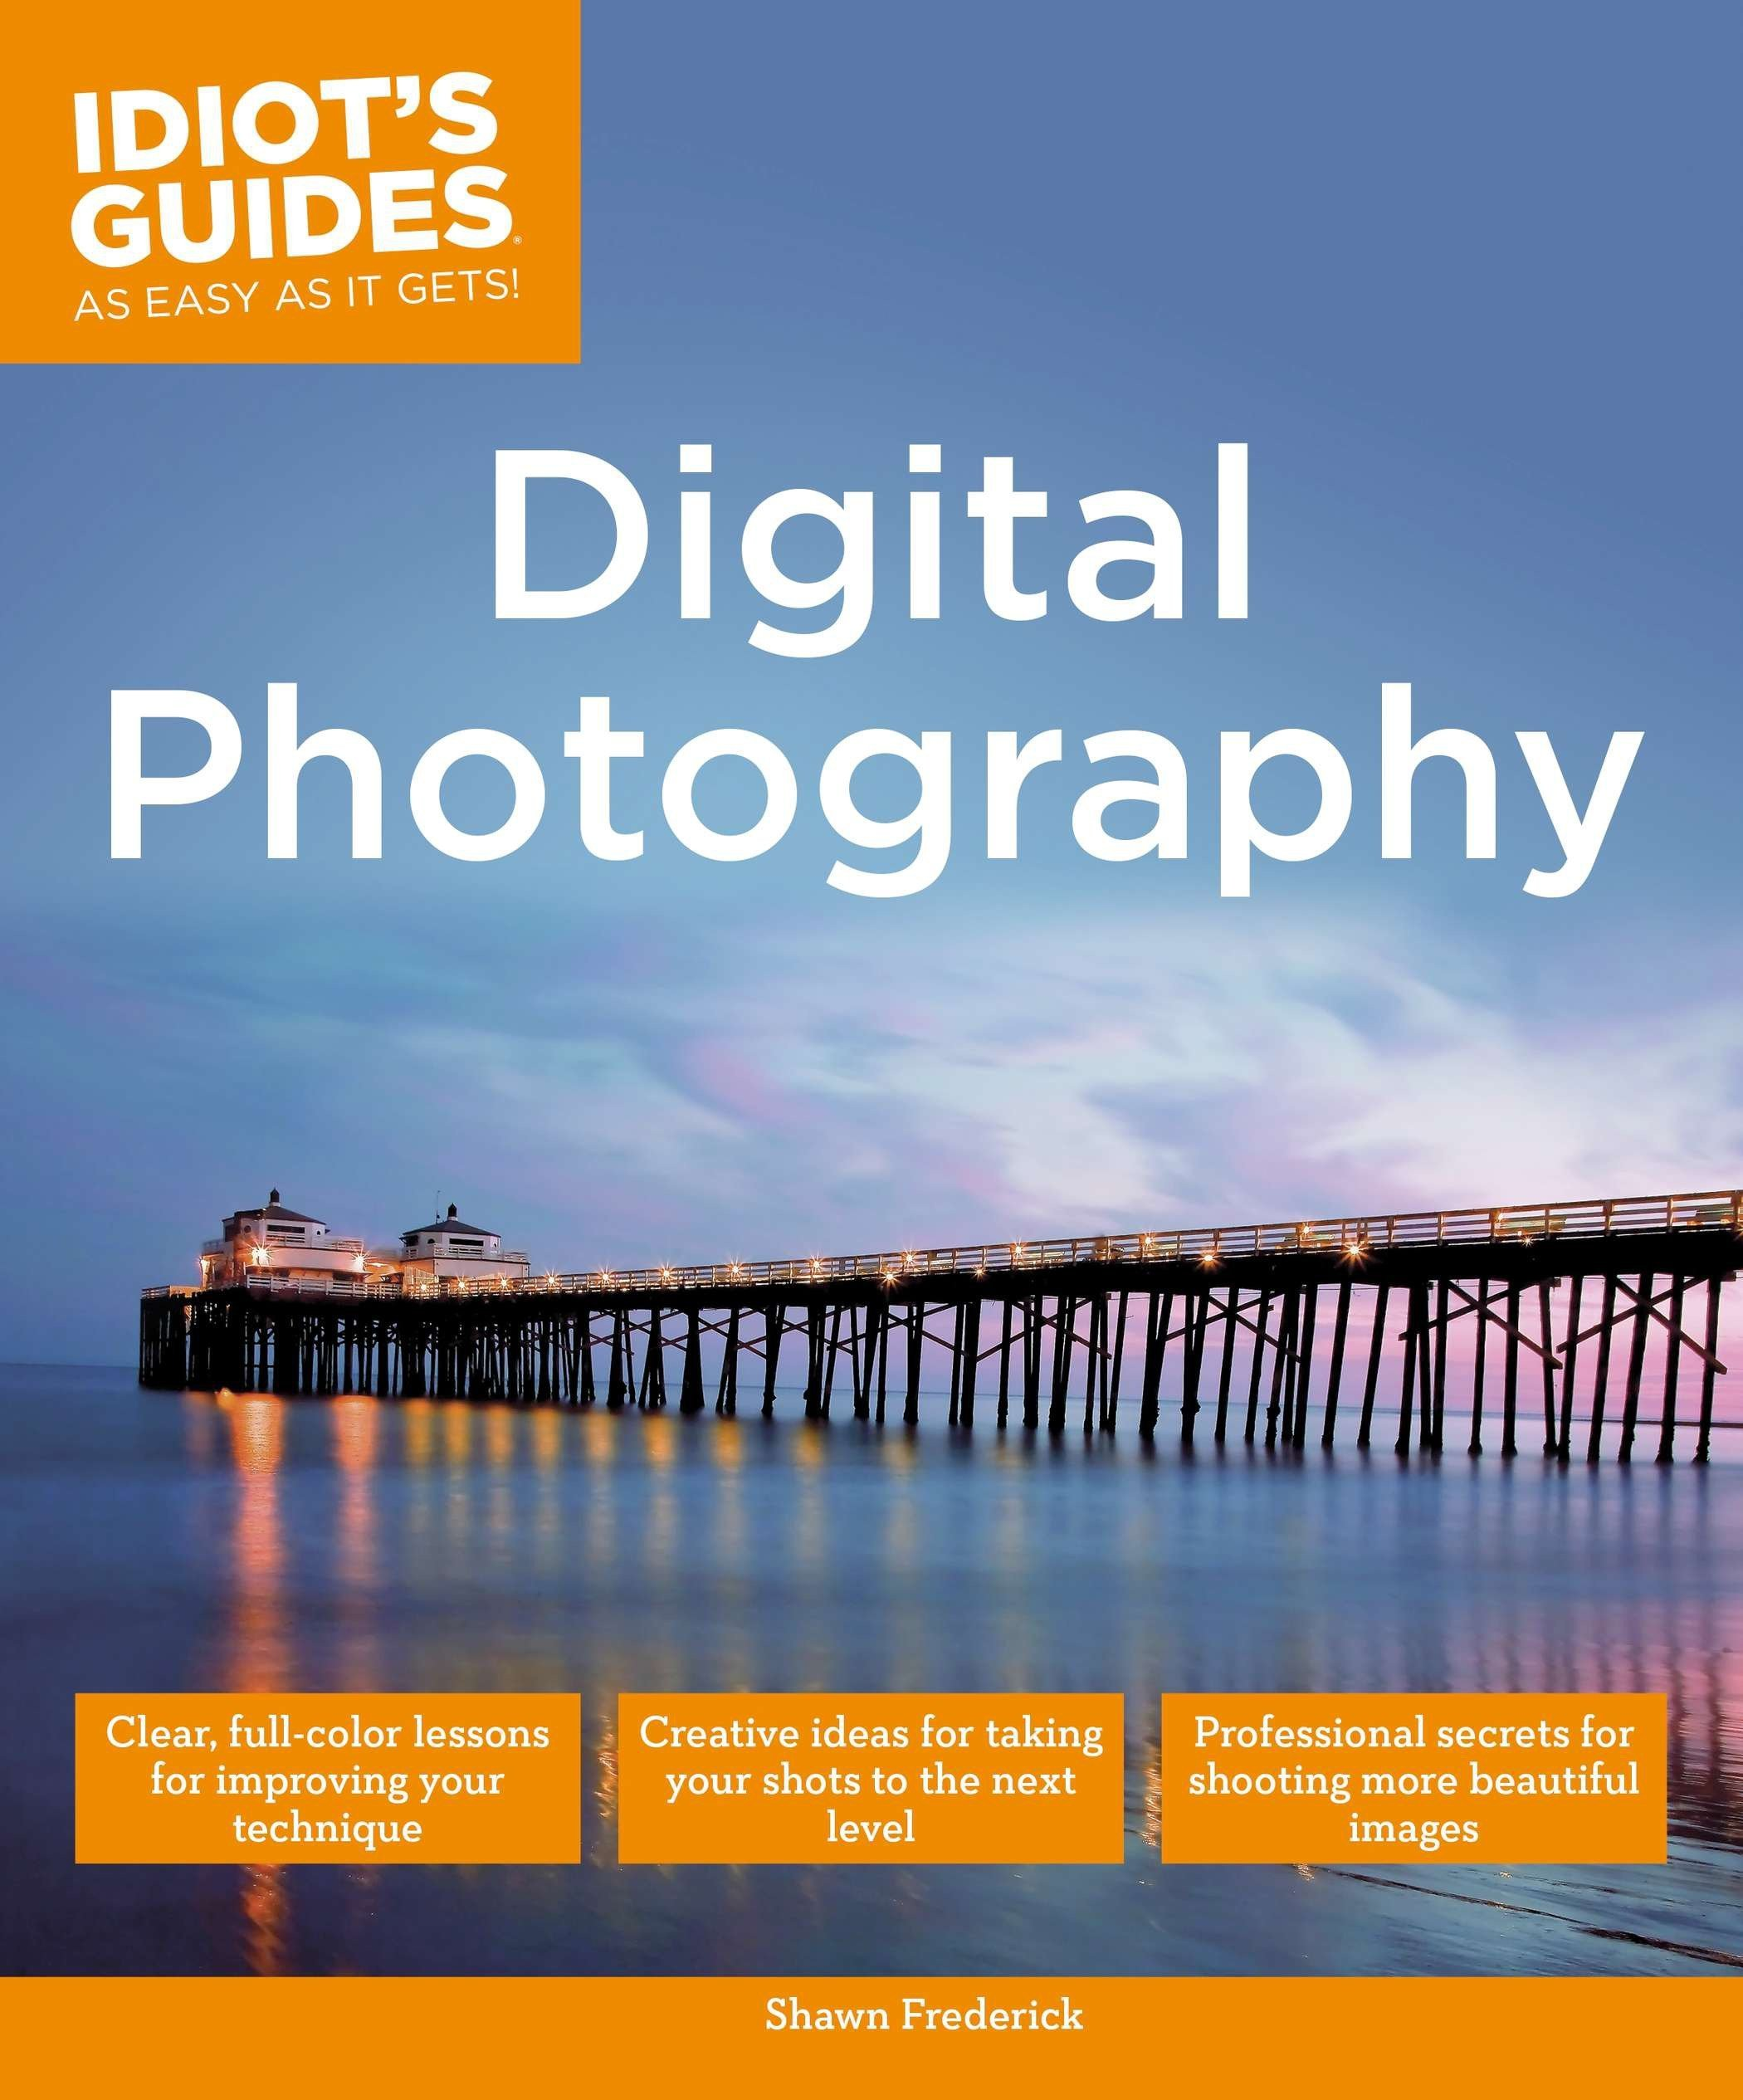 Idiot's Guides: Digital Photography pdf